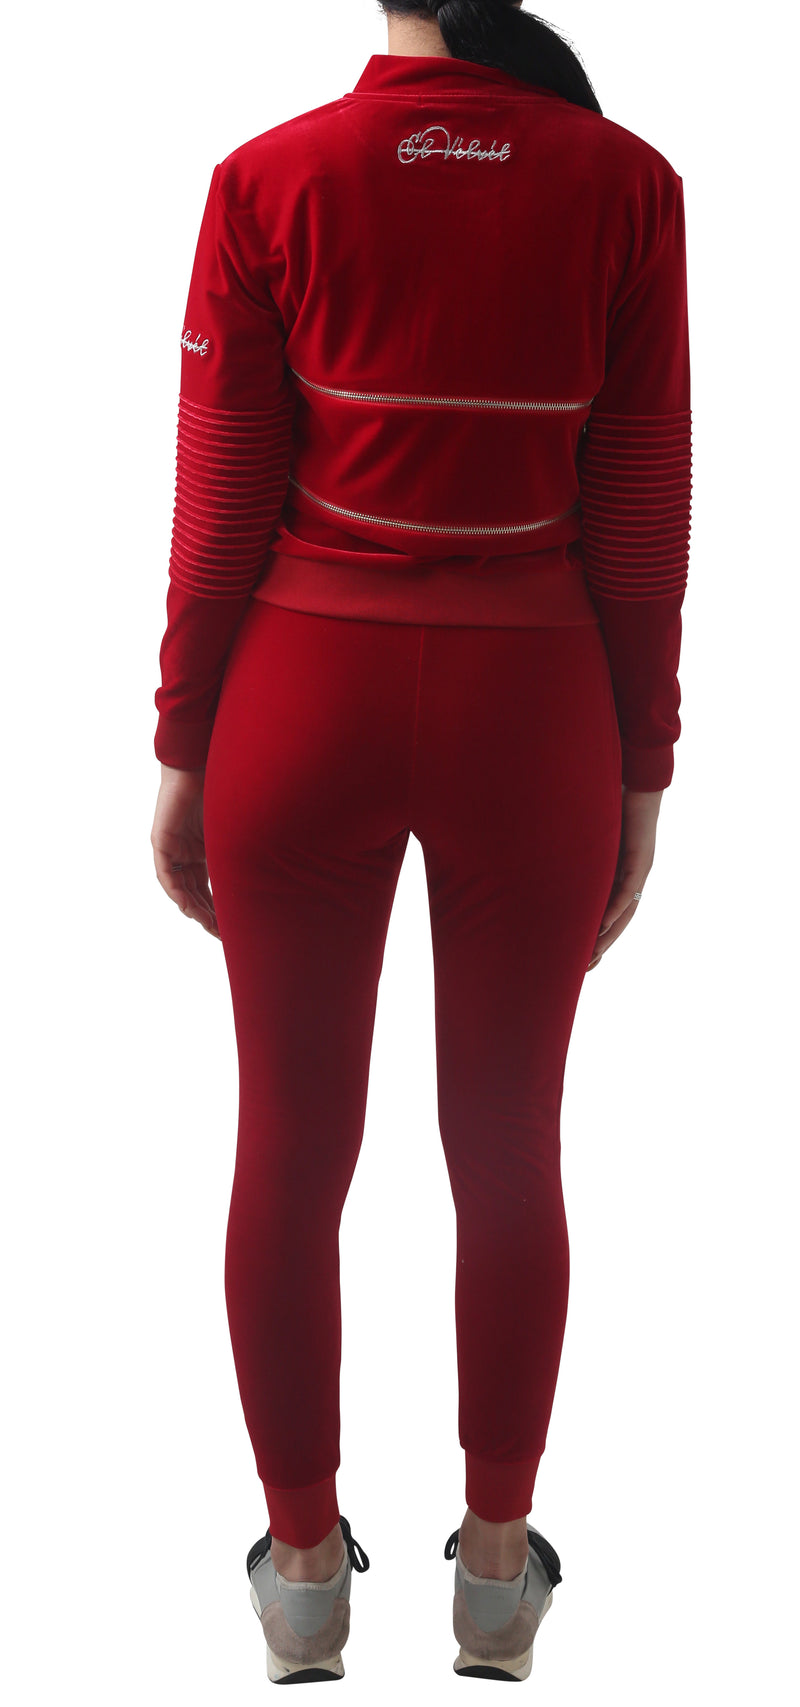 Women's Red Vélvét Full Tracksuit